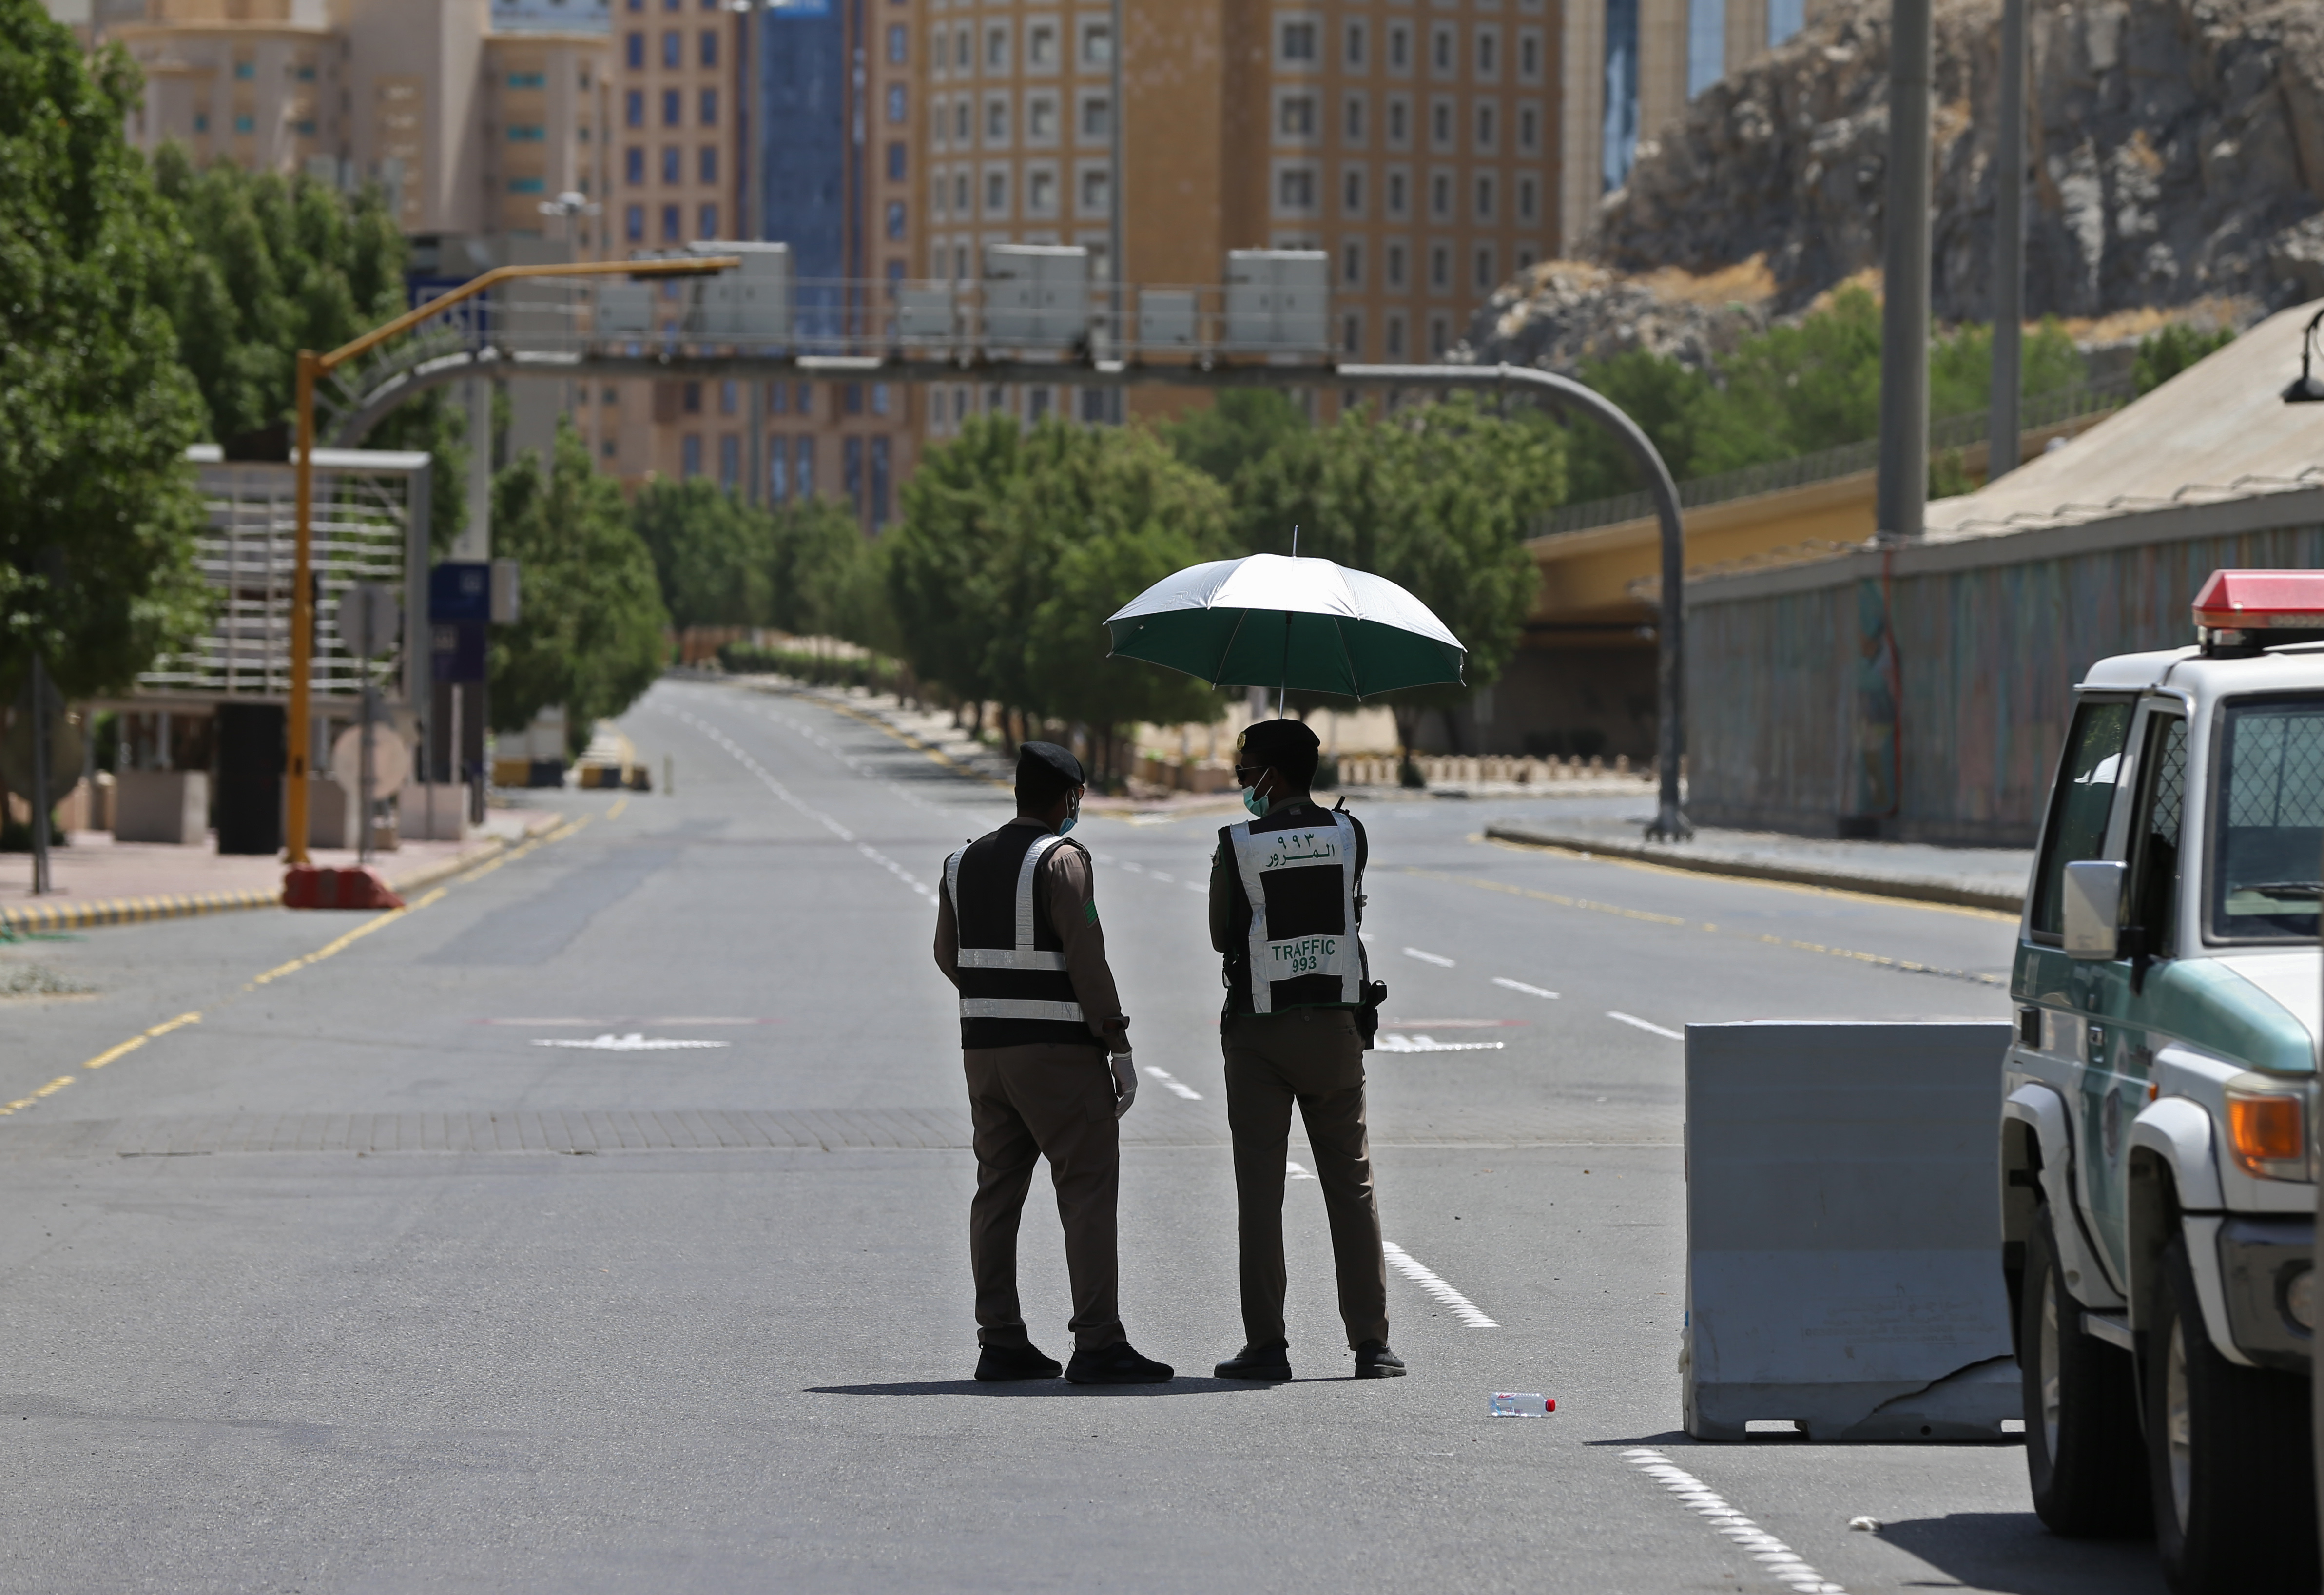 Coronavirus: Saudi Arabia extends curfews to 24 hours in cities and governorates